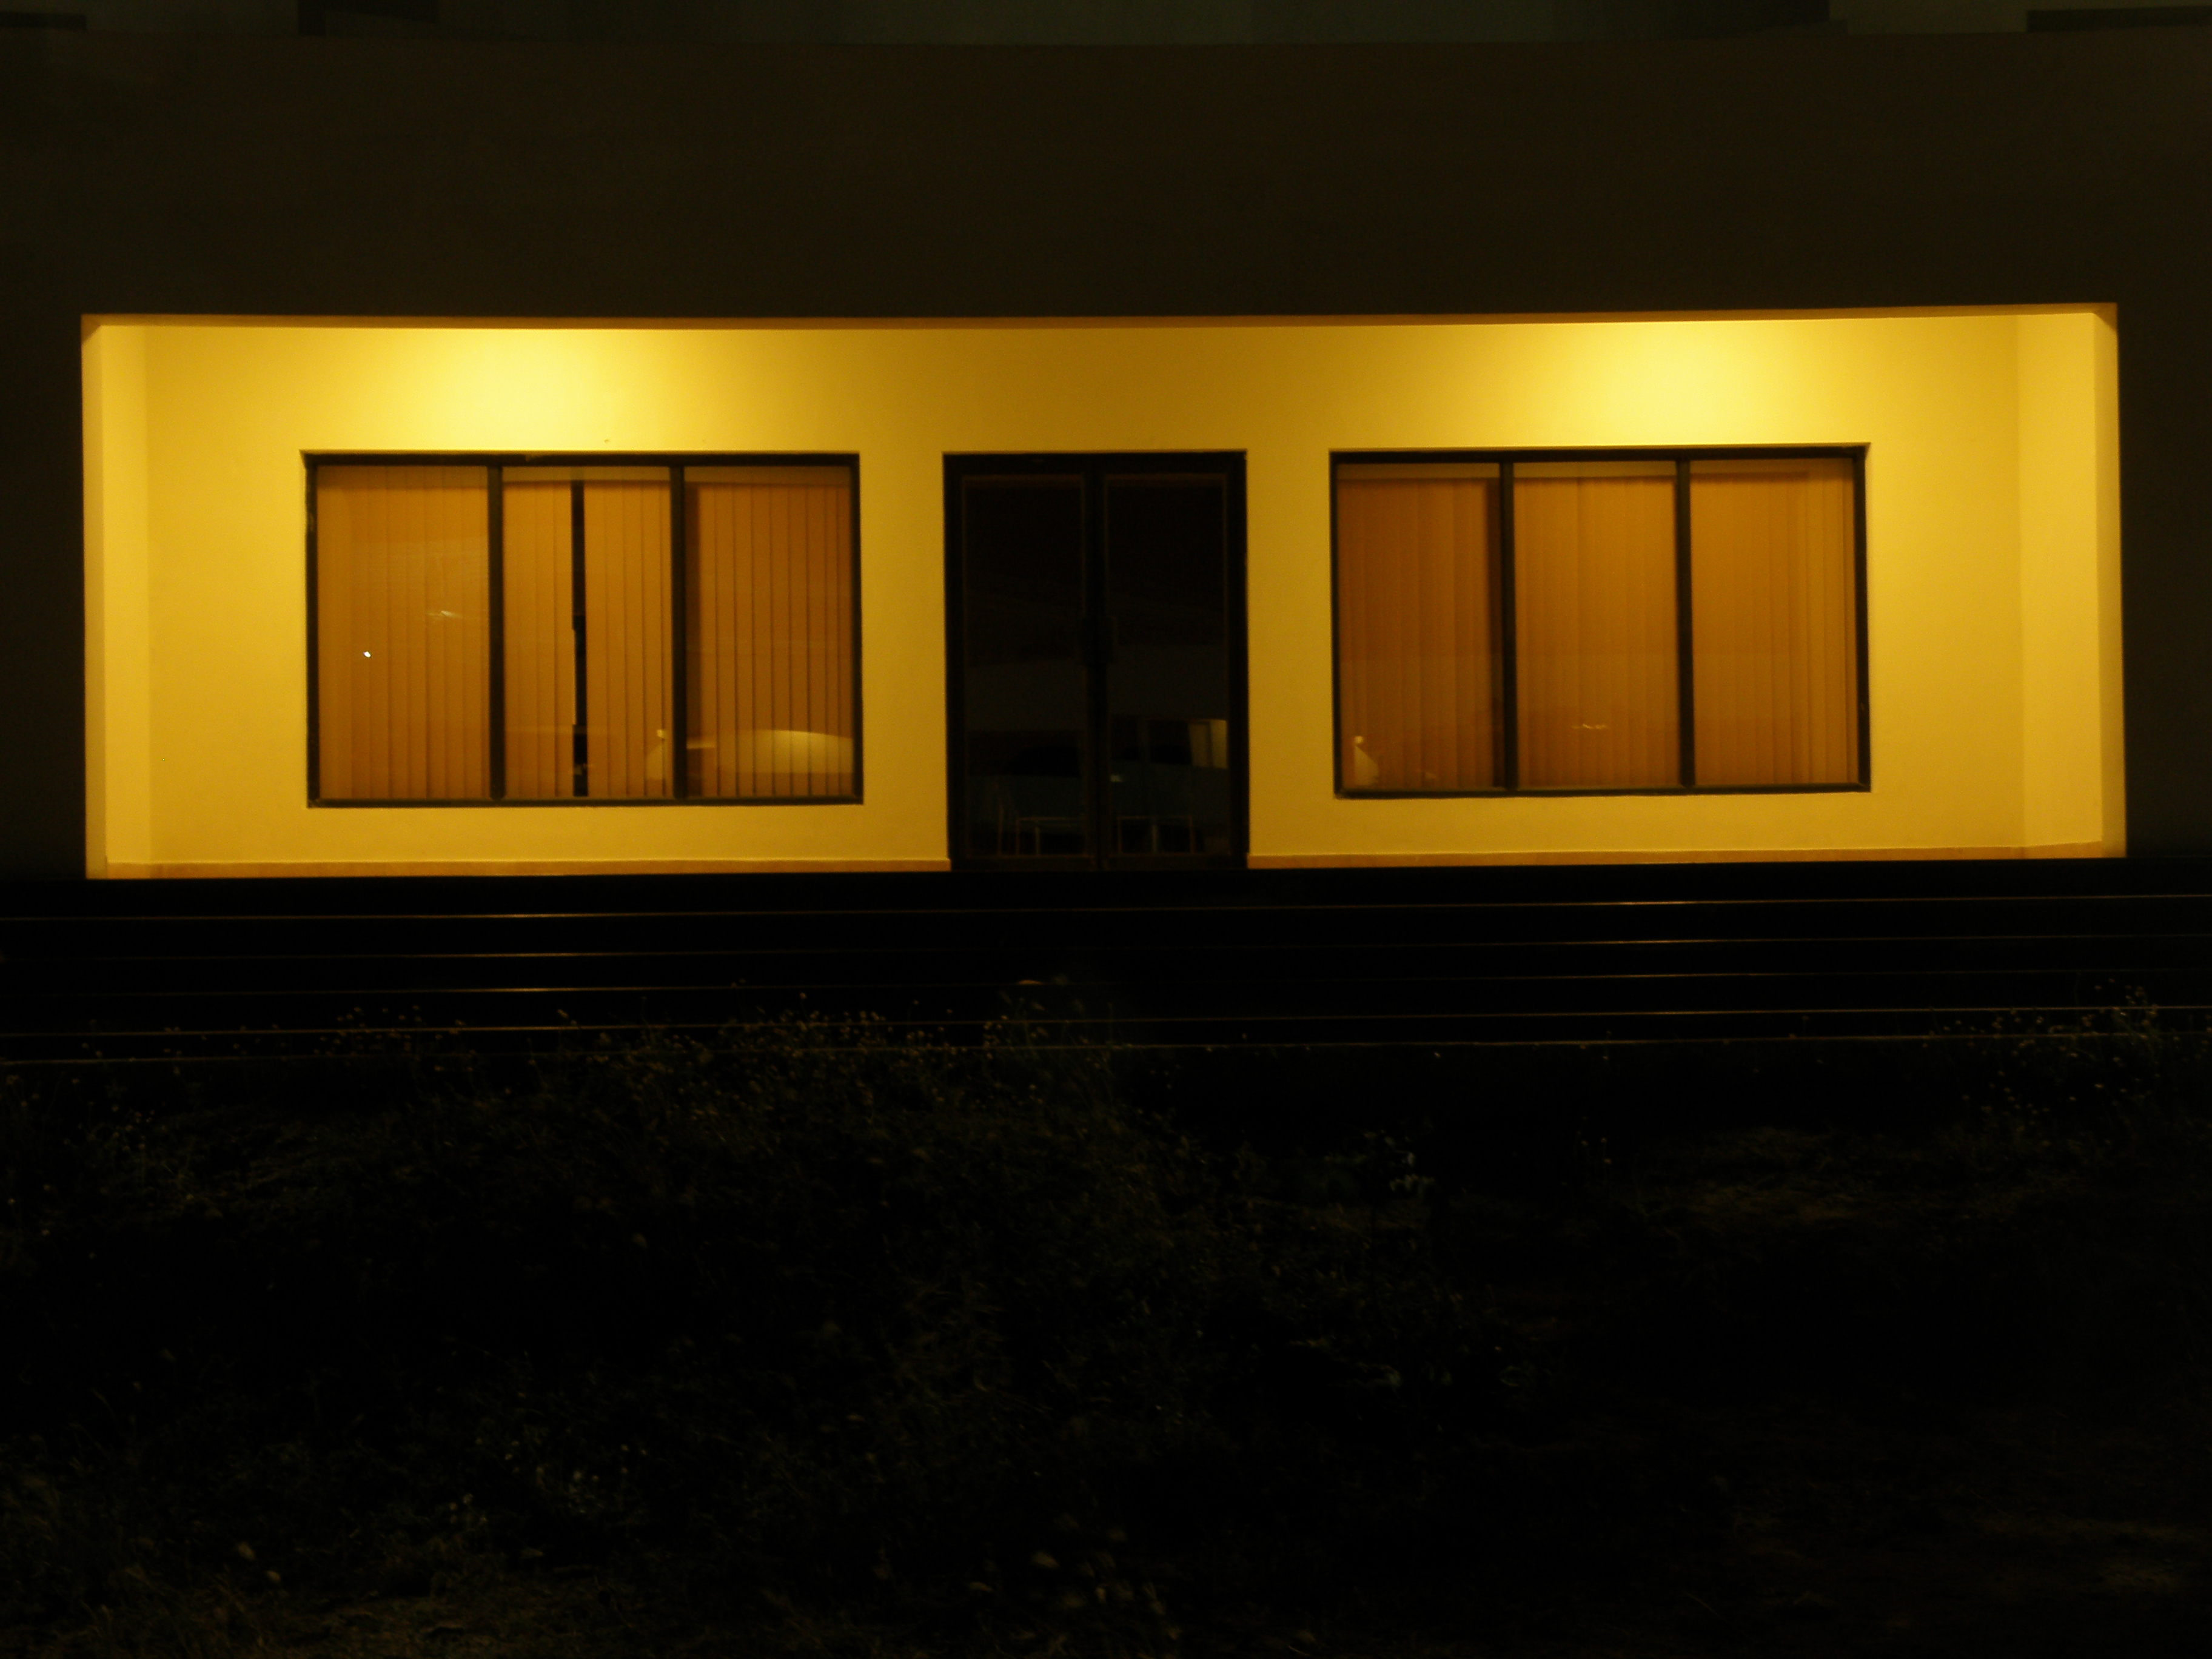 FileChennai Mathematical Institute Faculty Dining Hall Outside At NightJPG